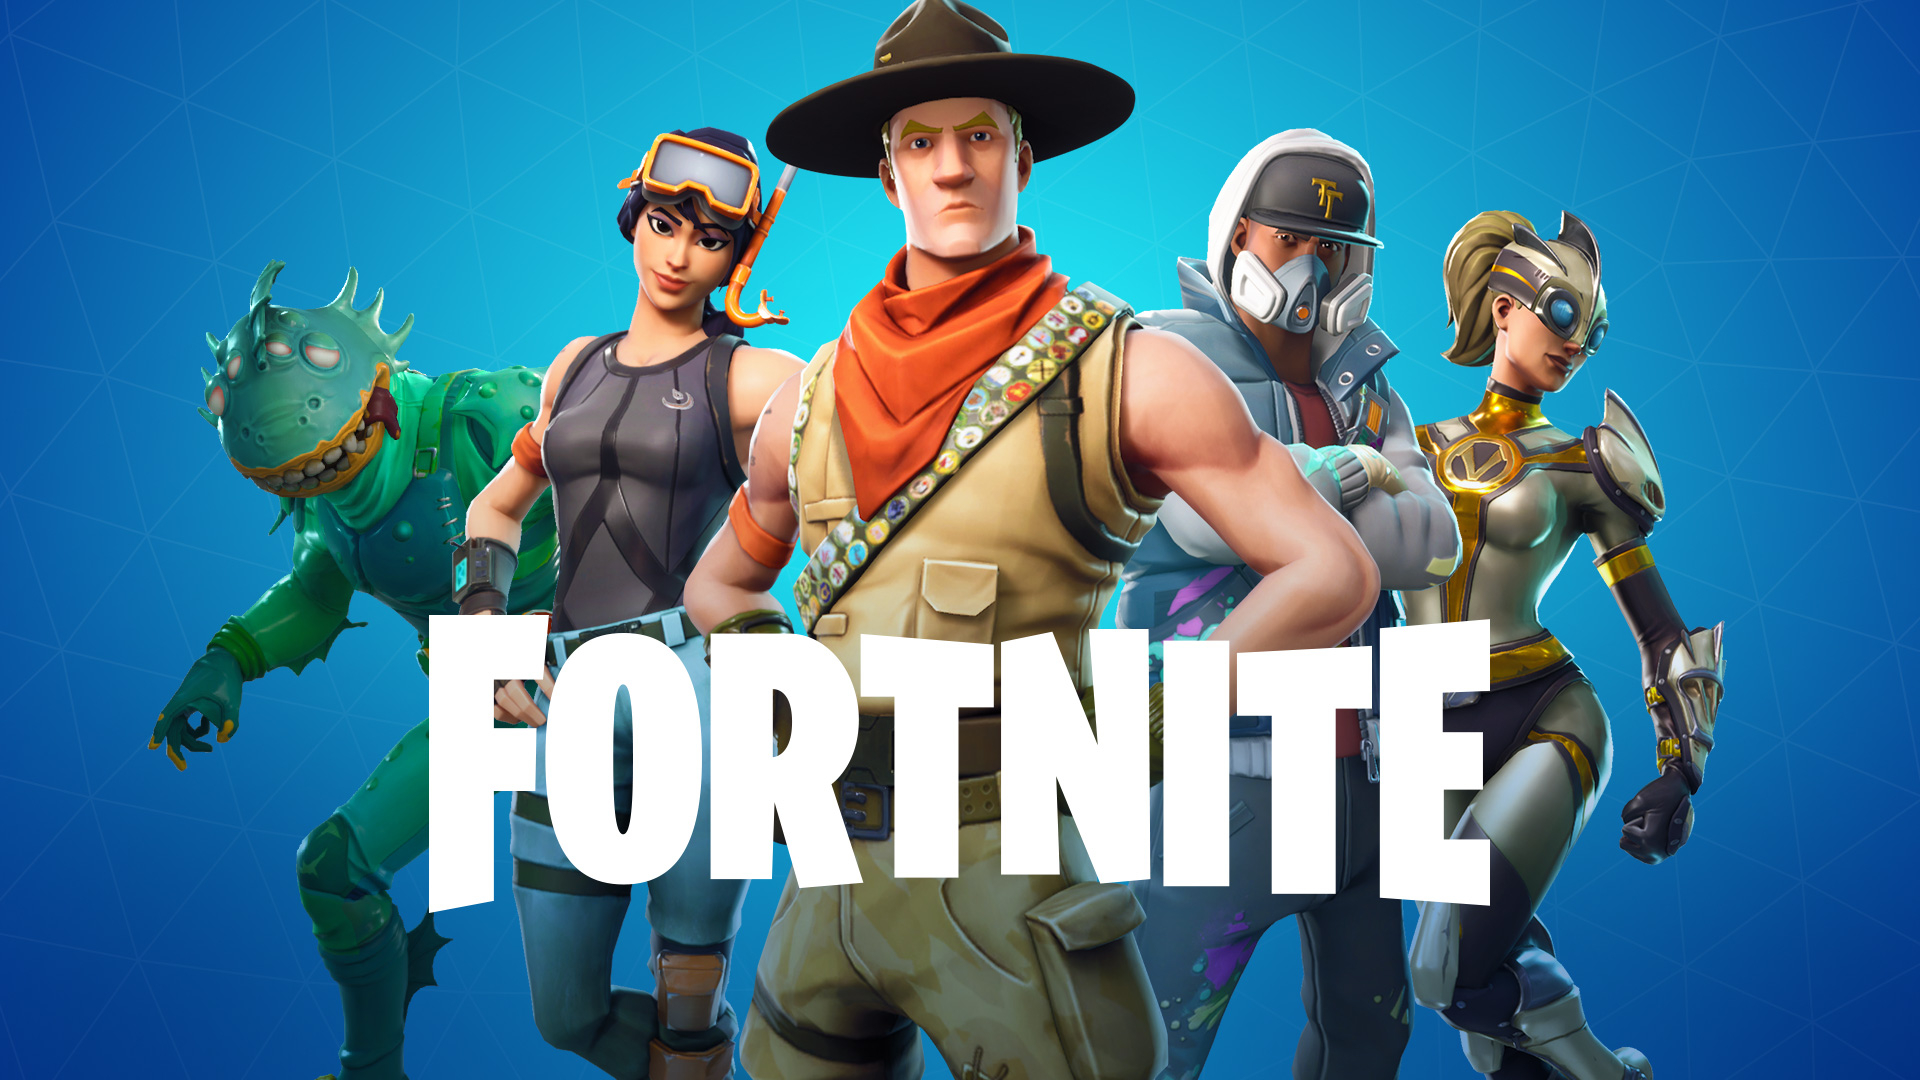 Download the Famous Fortnite Apk Mod Version With Simple Hack Method